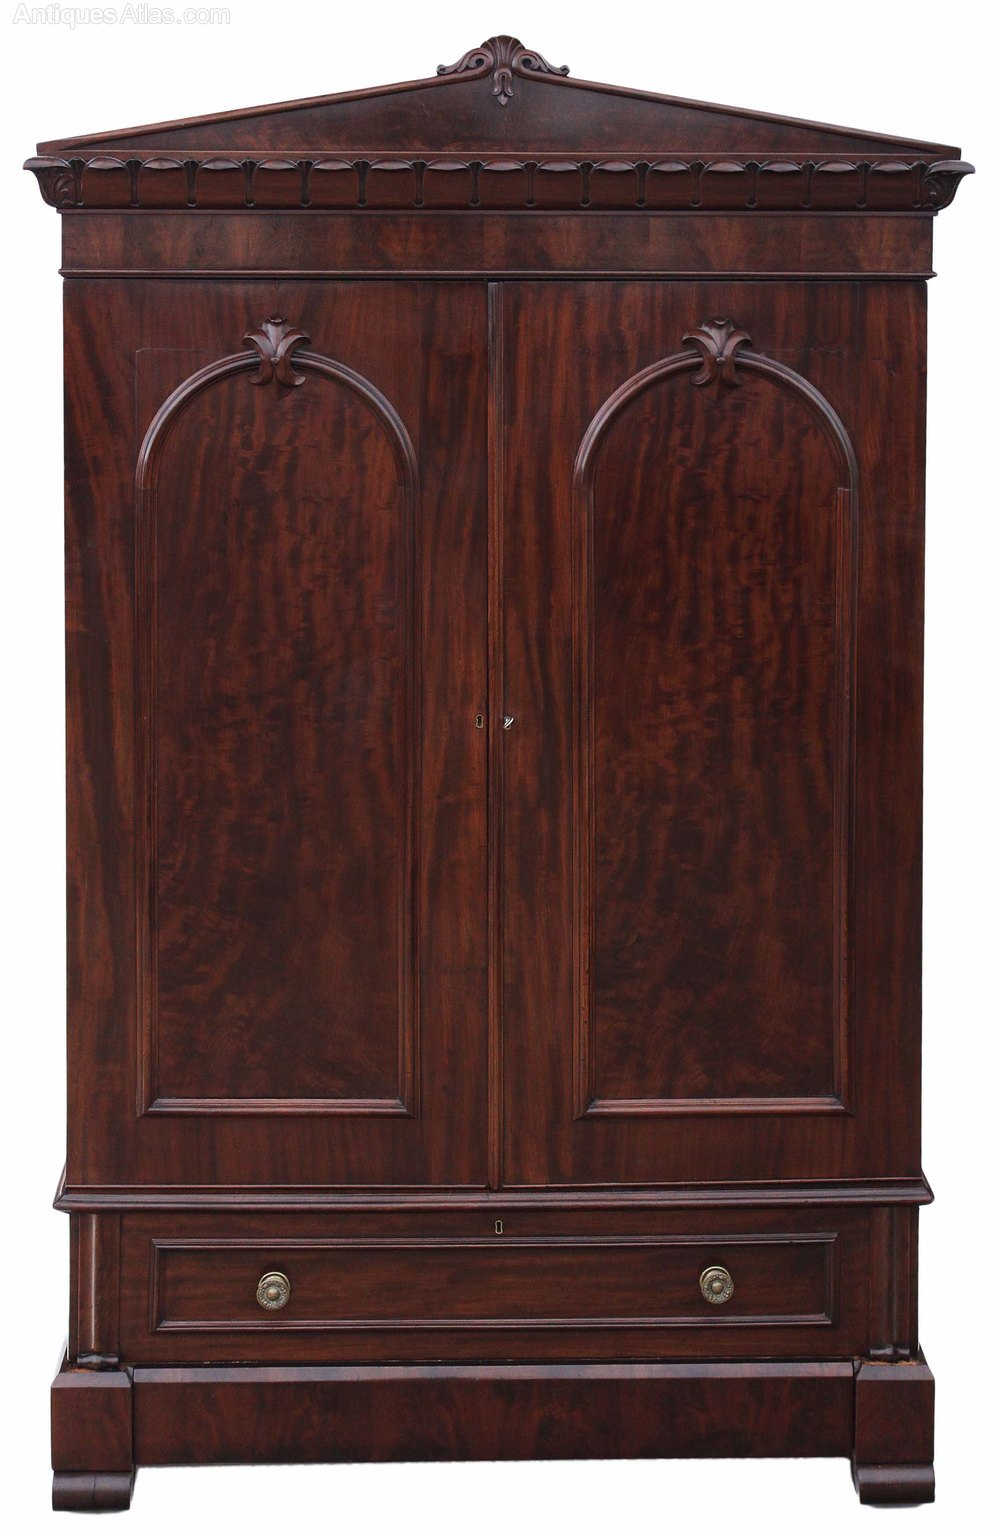 william iv mahogany armoire wardrobe linen press antiques atlas. Black Bedroom Furniture Sets. Home Design Ideas